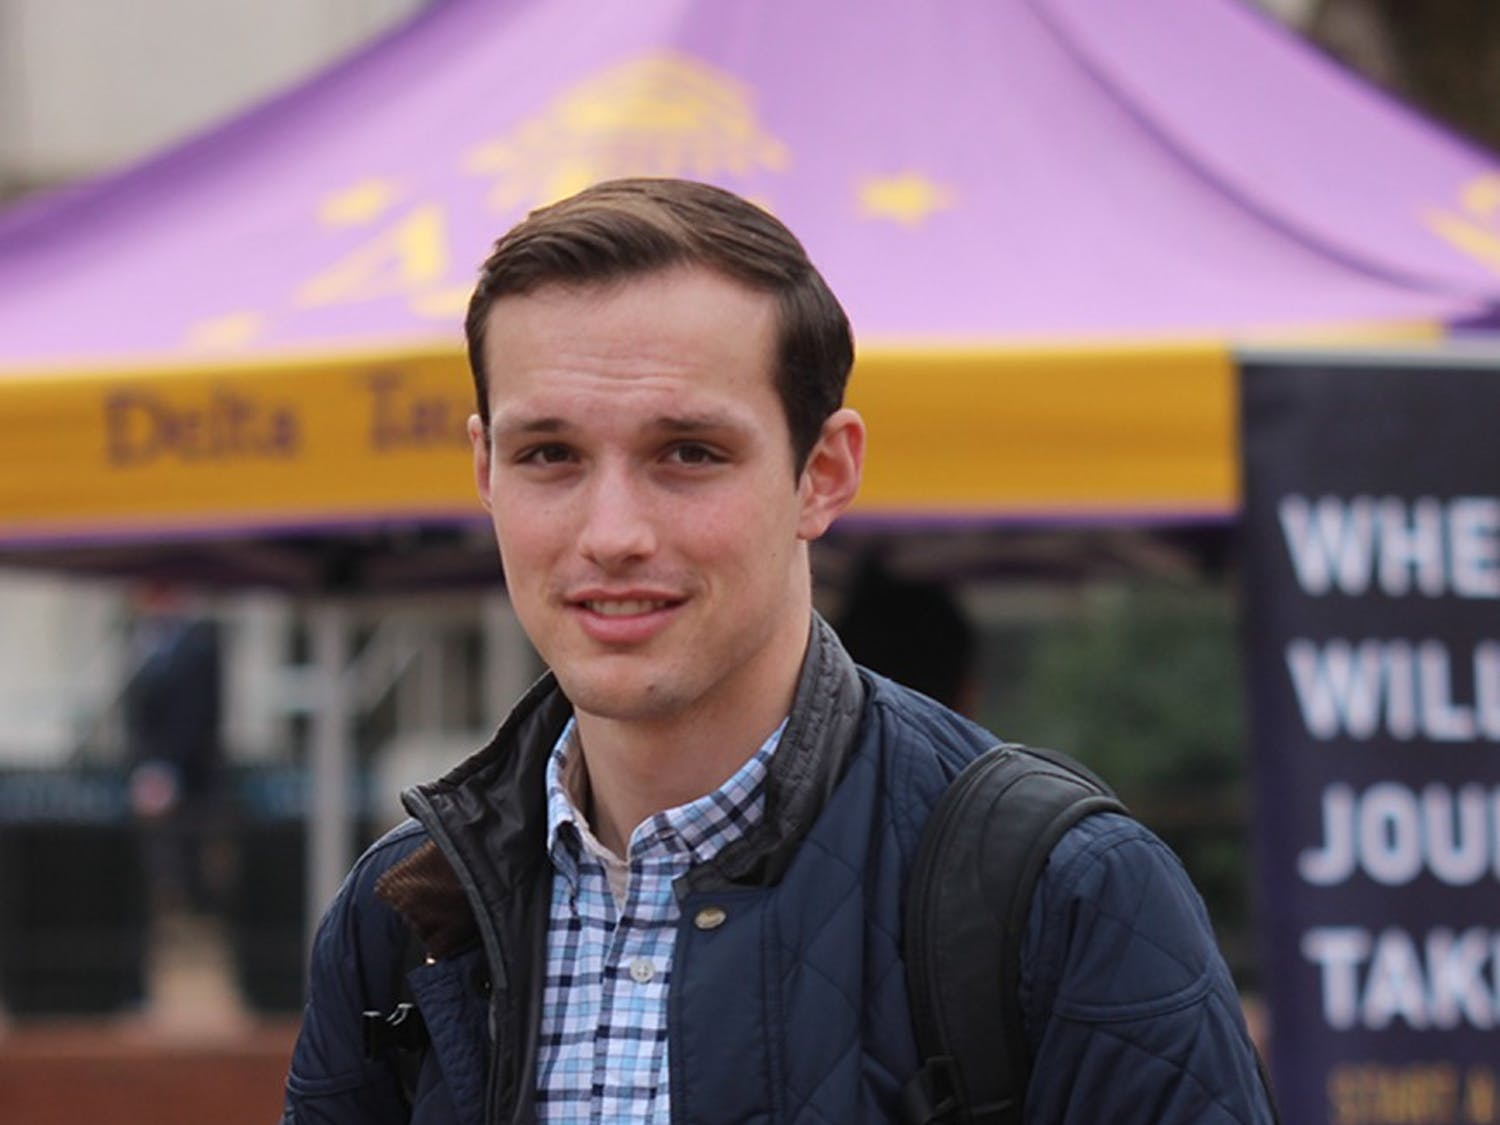 Matthew McKnight is a junior public policy and history major and is running to be the Student Body President.